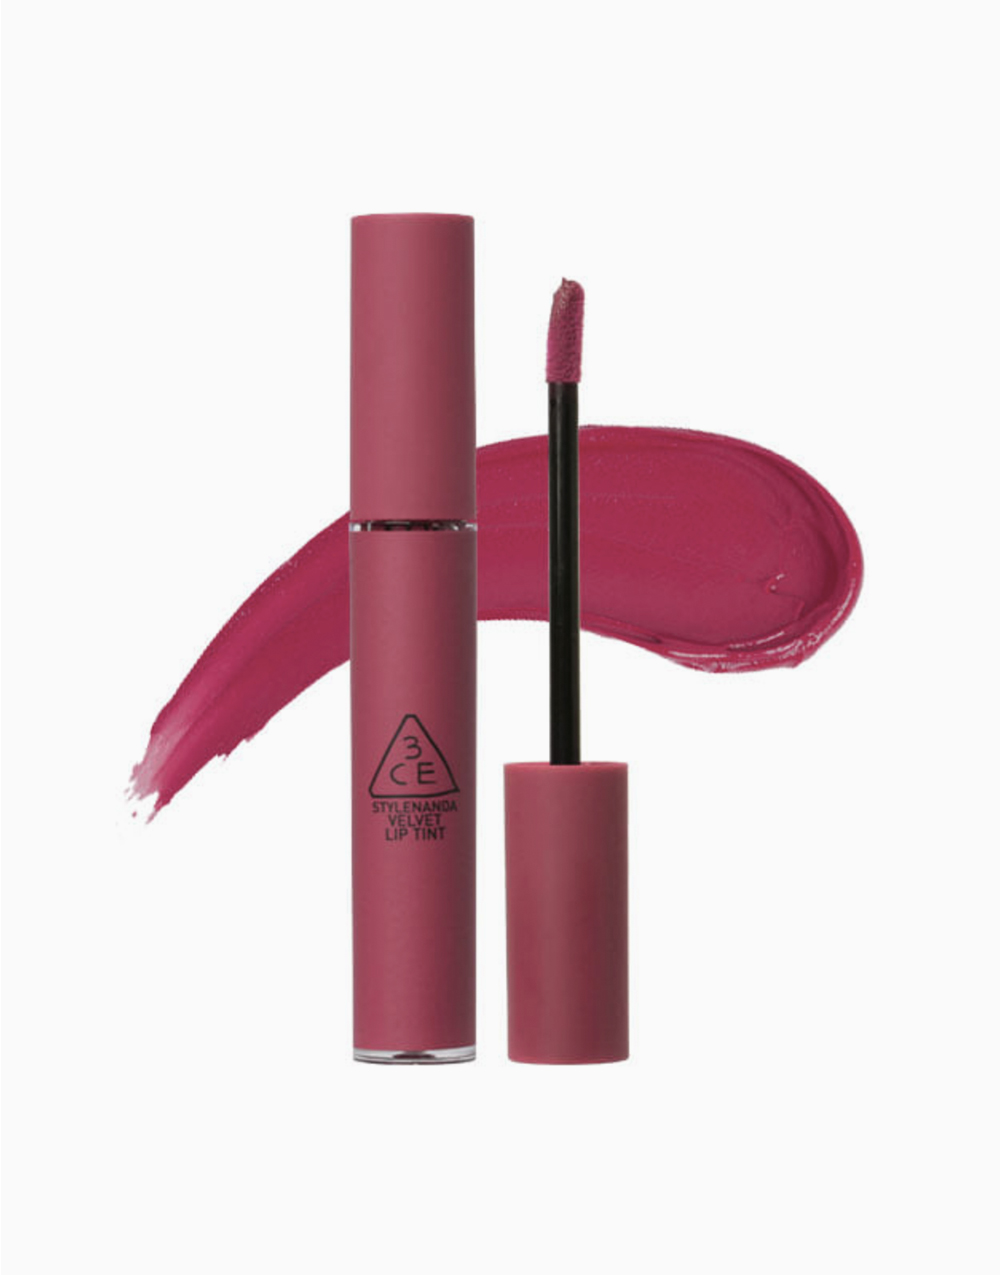 Velvet Lip Tint by 3CE (3 Concept Eyes) | Know Better